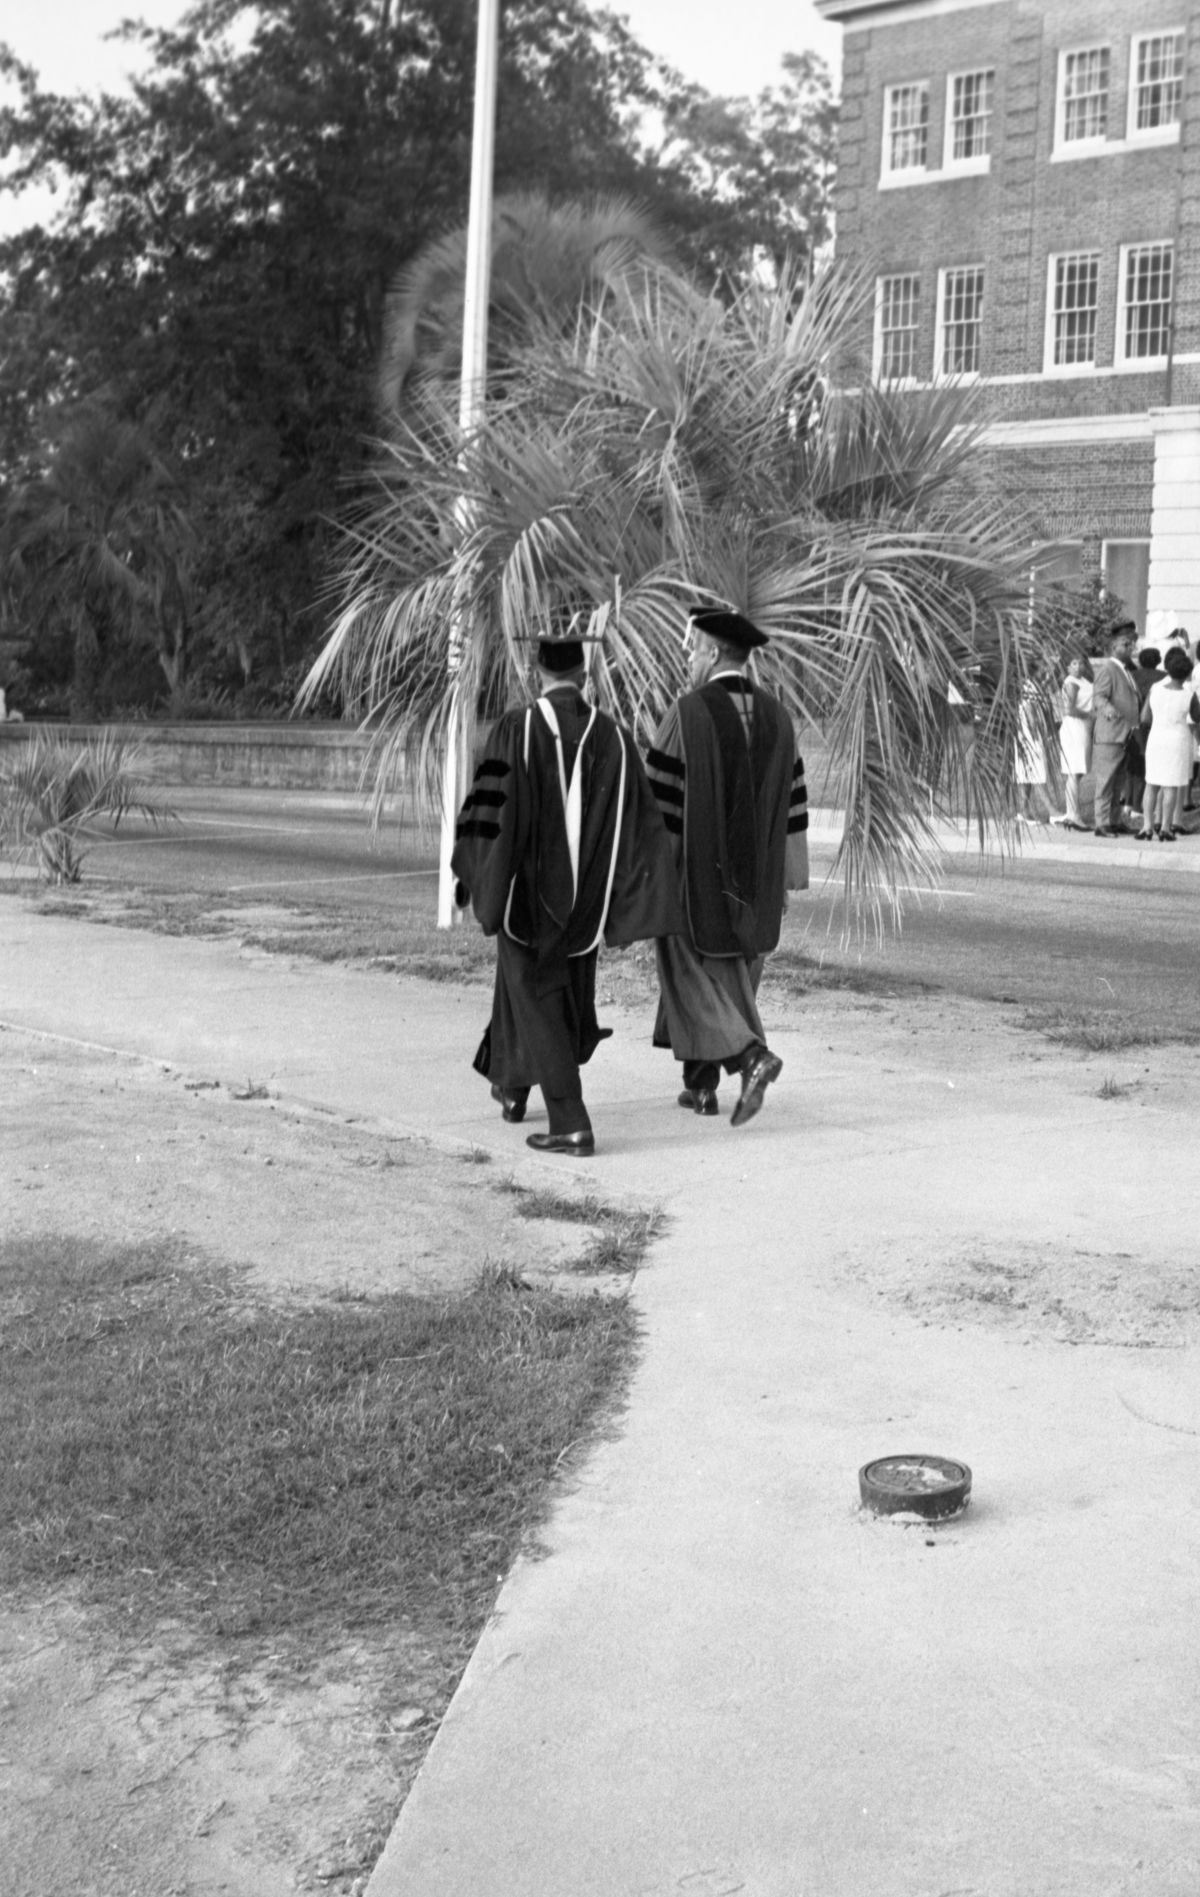 FAMU president Dr. Gore, left, walking with Morehouse College president Dr. Gloster after the commencement exercises in Tallahassee.